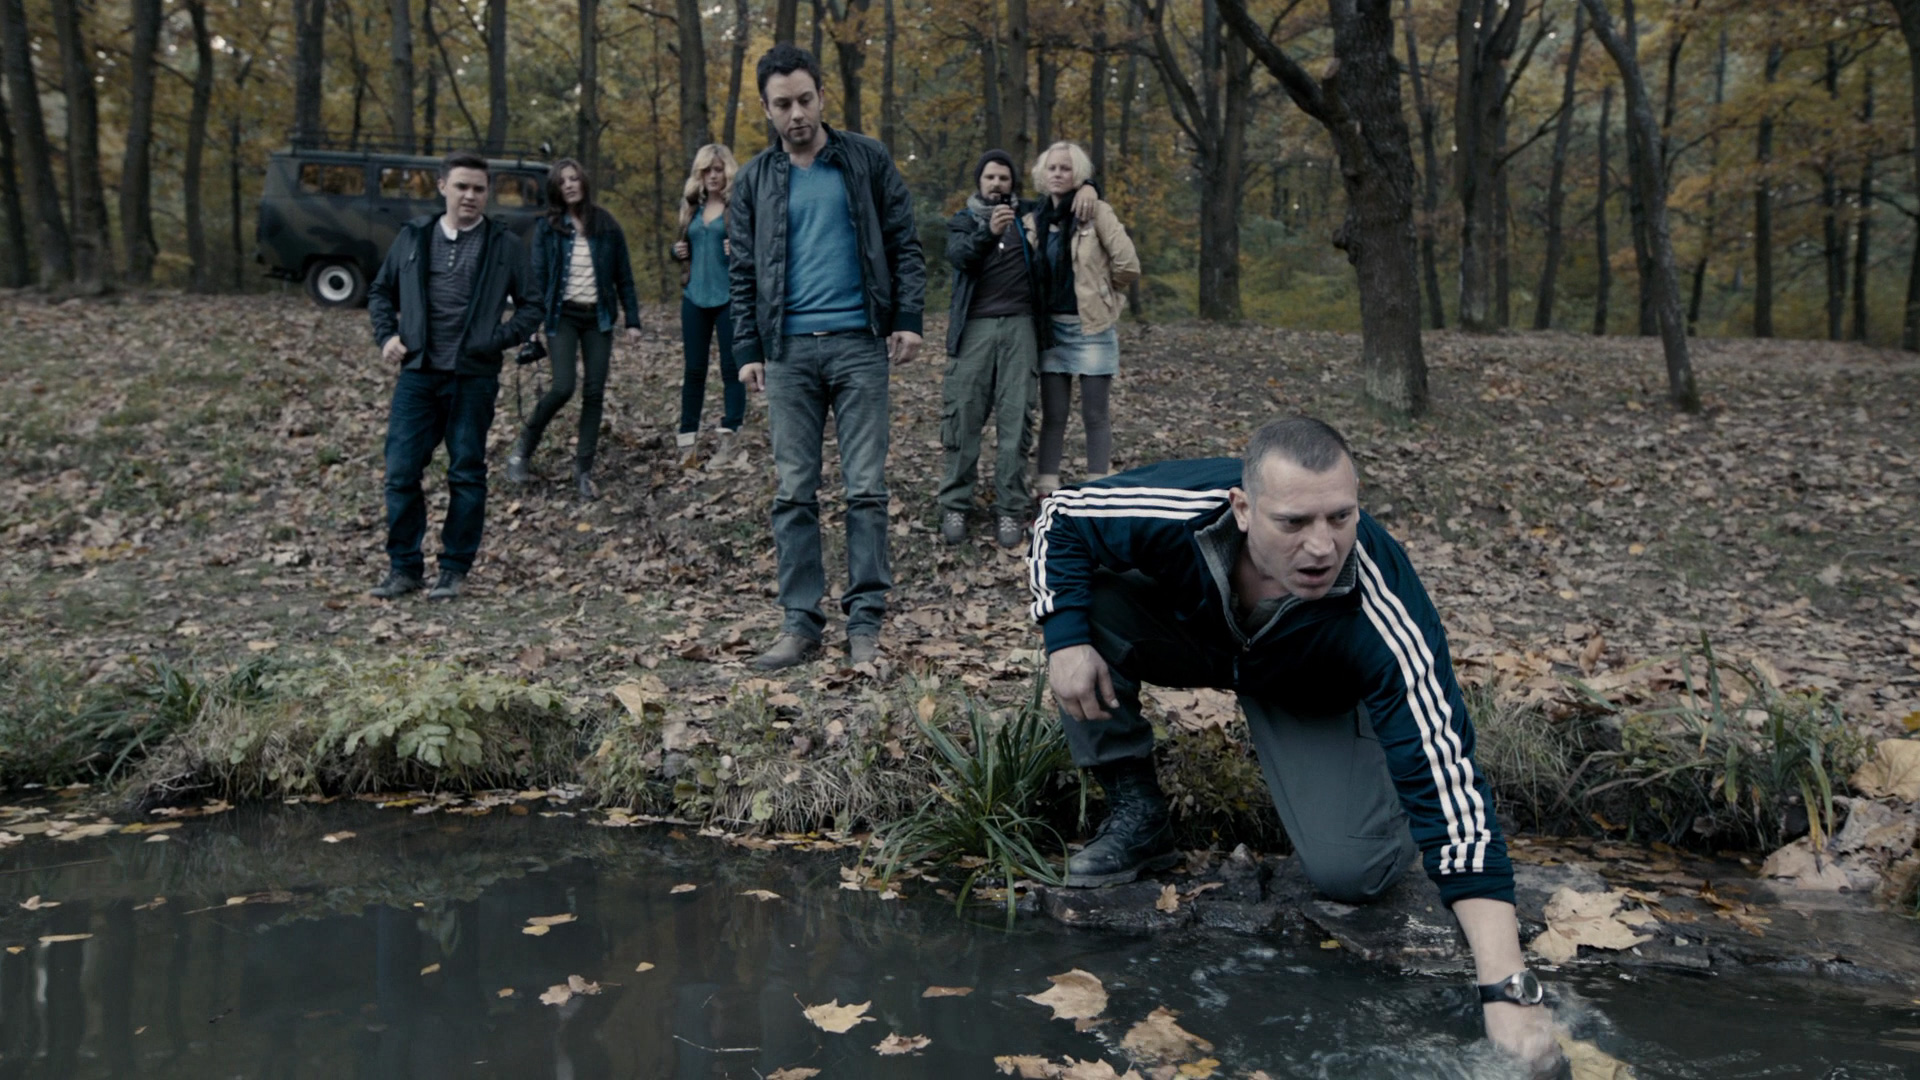 Chernobyl Diaries (2012) review – That Was A Bit Mental